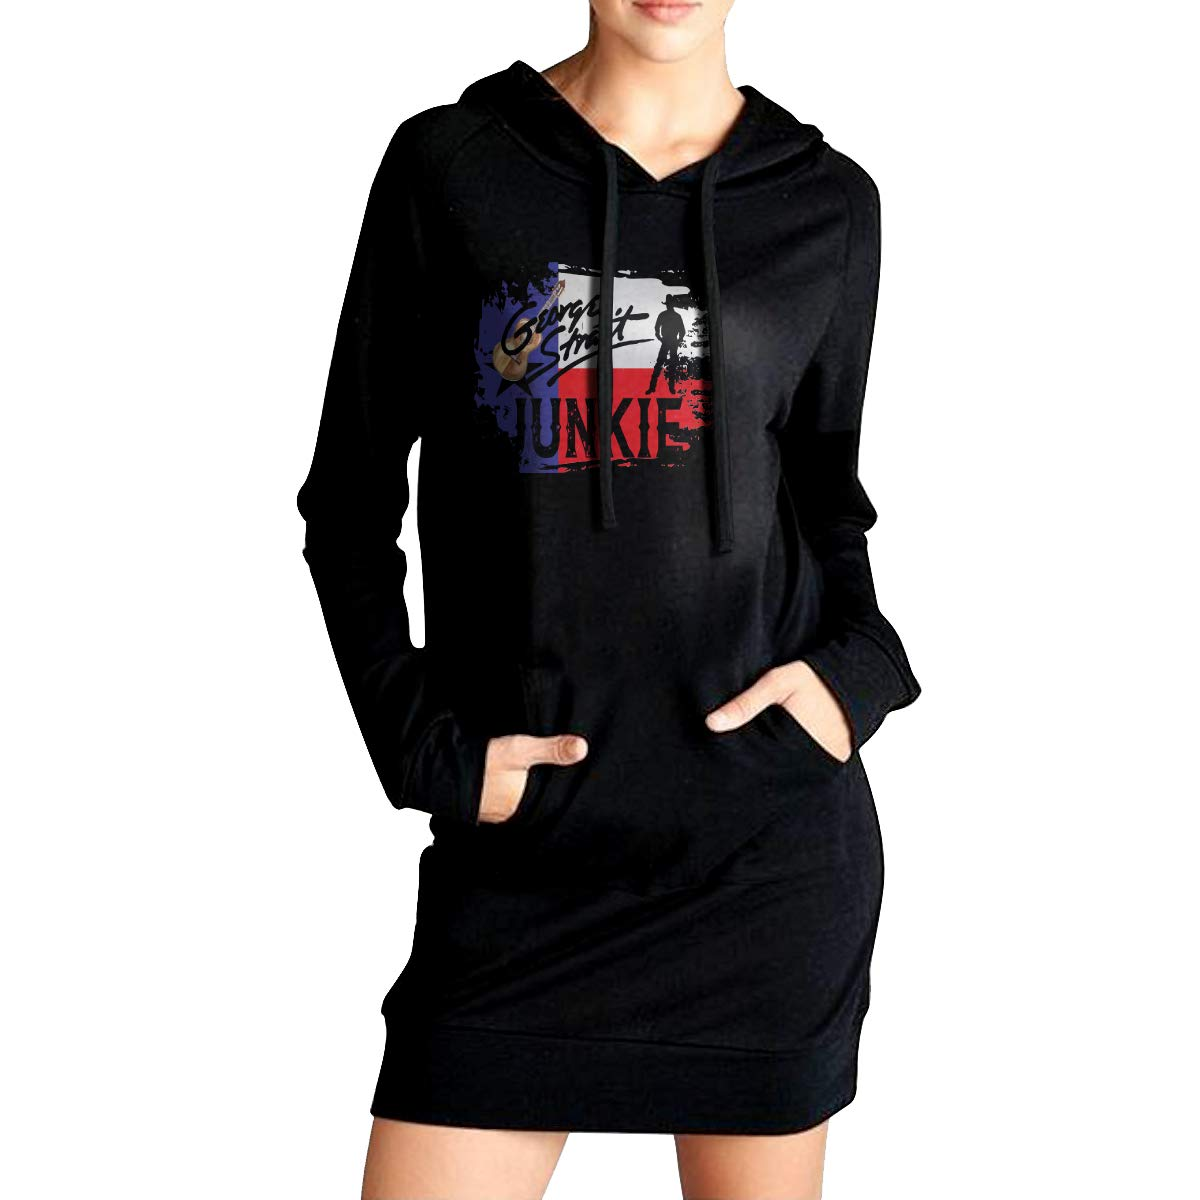 Sunshine George Strait Junkie Womens Long Sleeve Hooded Loose Casual Pullover Hoodie Dress Tunic Sweatshirt Dress with Pockets